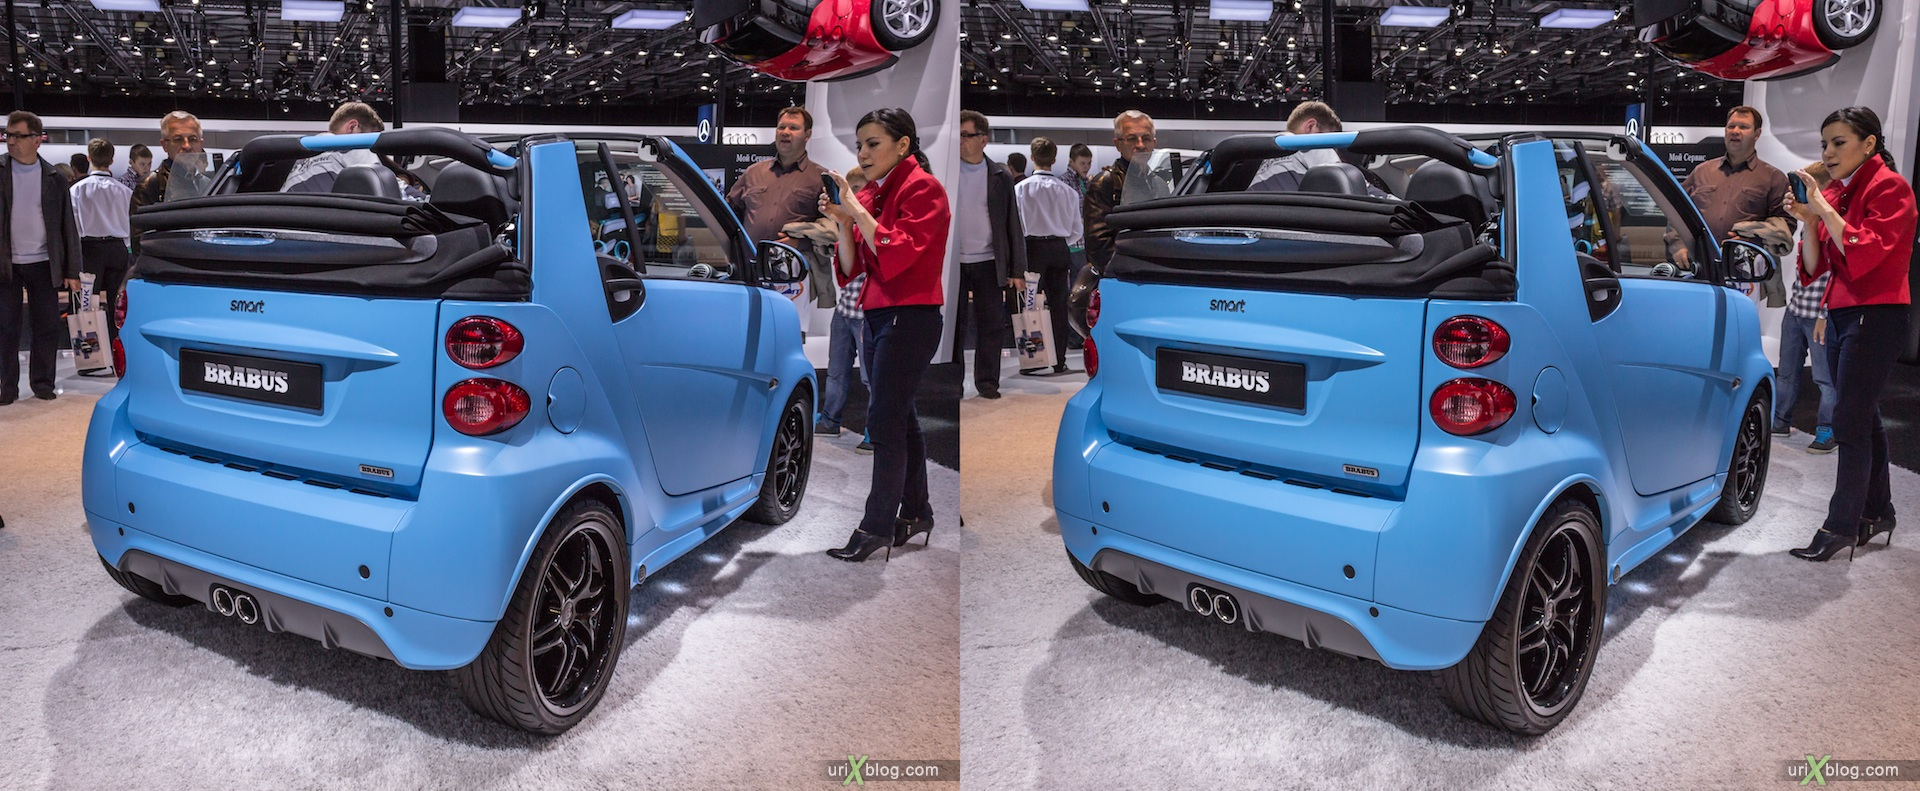 2012, Smart Brabus, Moscow International Automobile Salon, auto show, 3D, stereo pair, cross-eyed, crossview